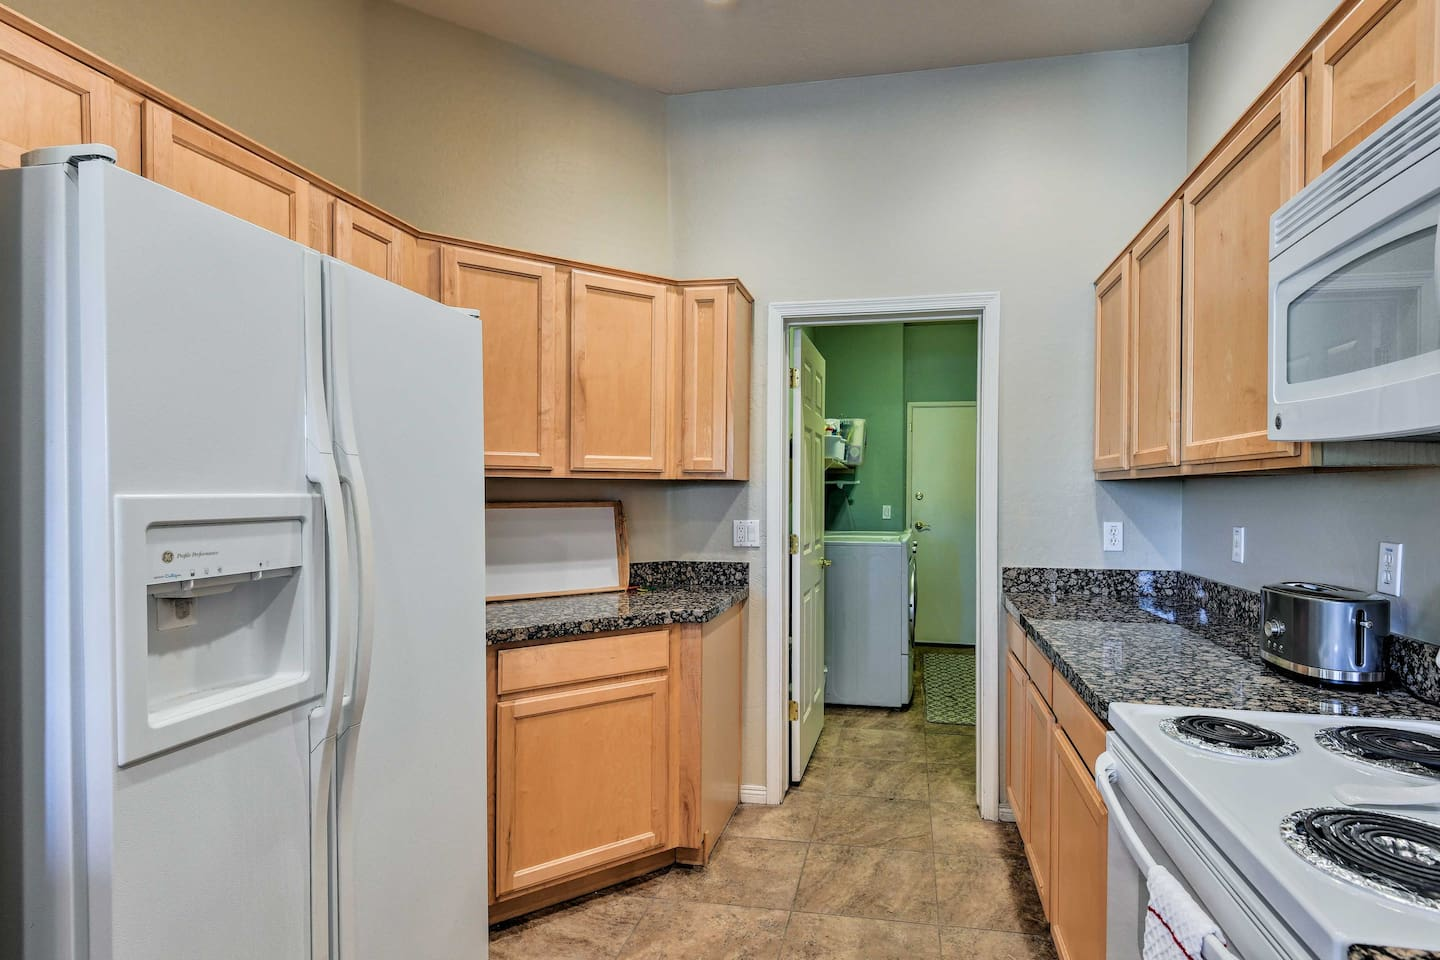 A fully equipped kitchen invites you to whip up your favorite dish!